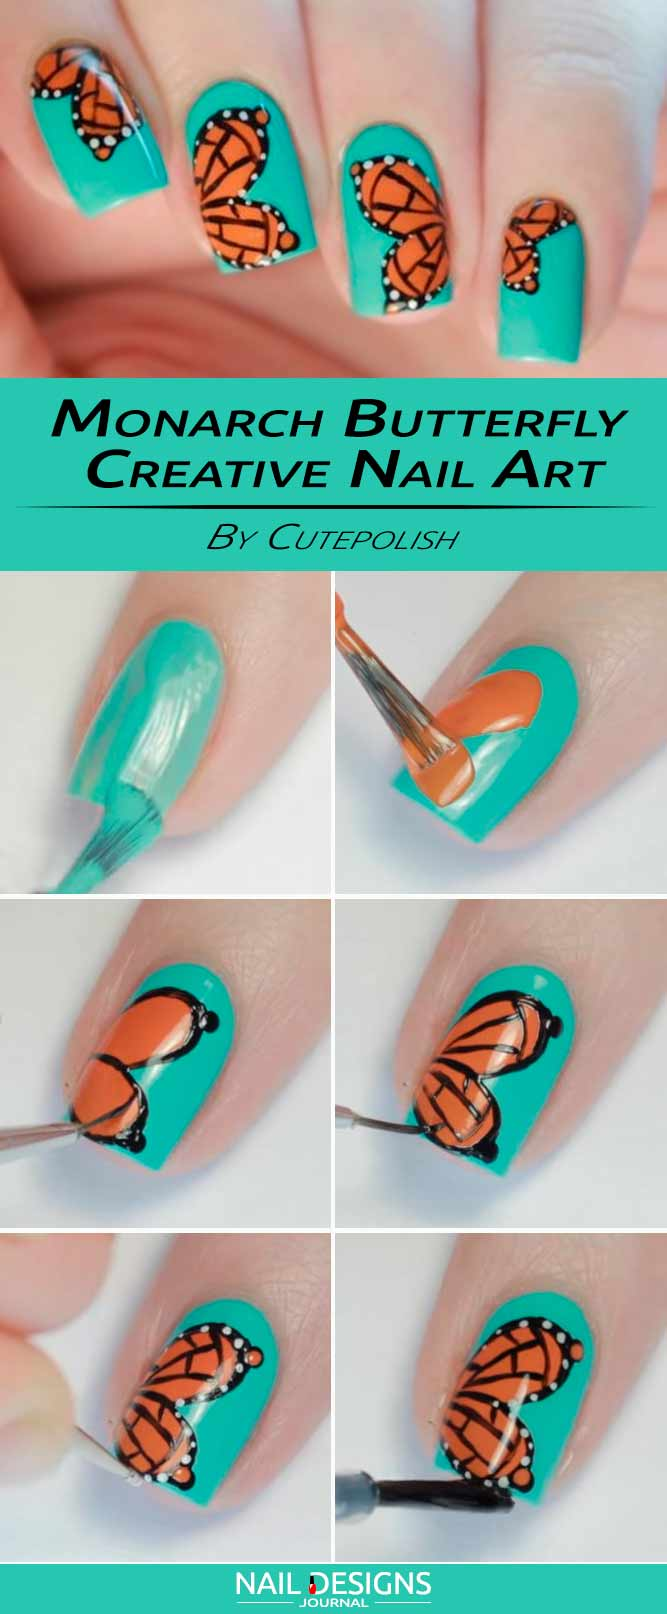 Easy And Creative Nail Design To Try Naildesignsjournal